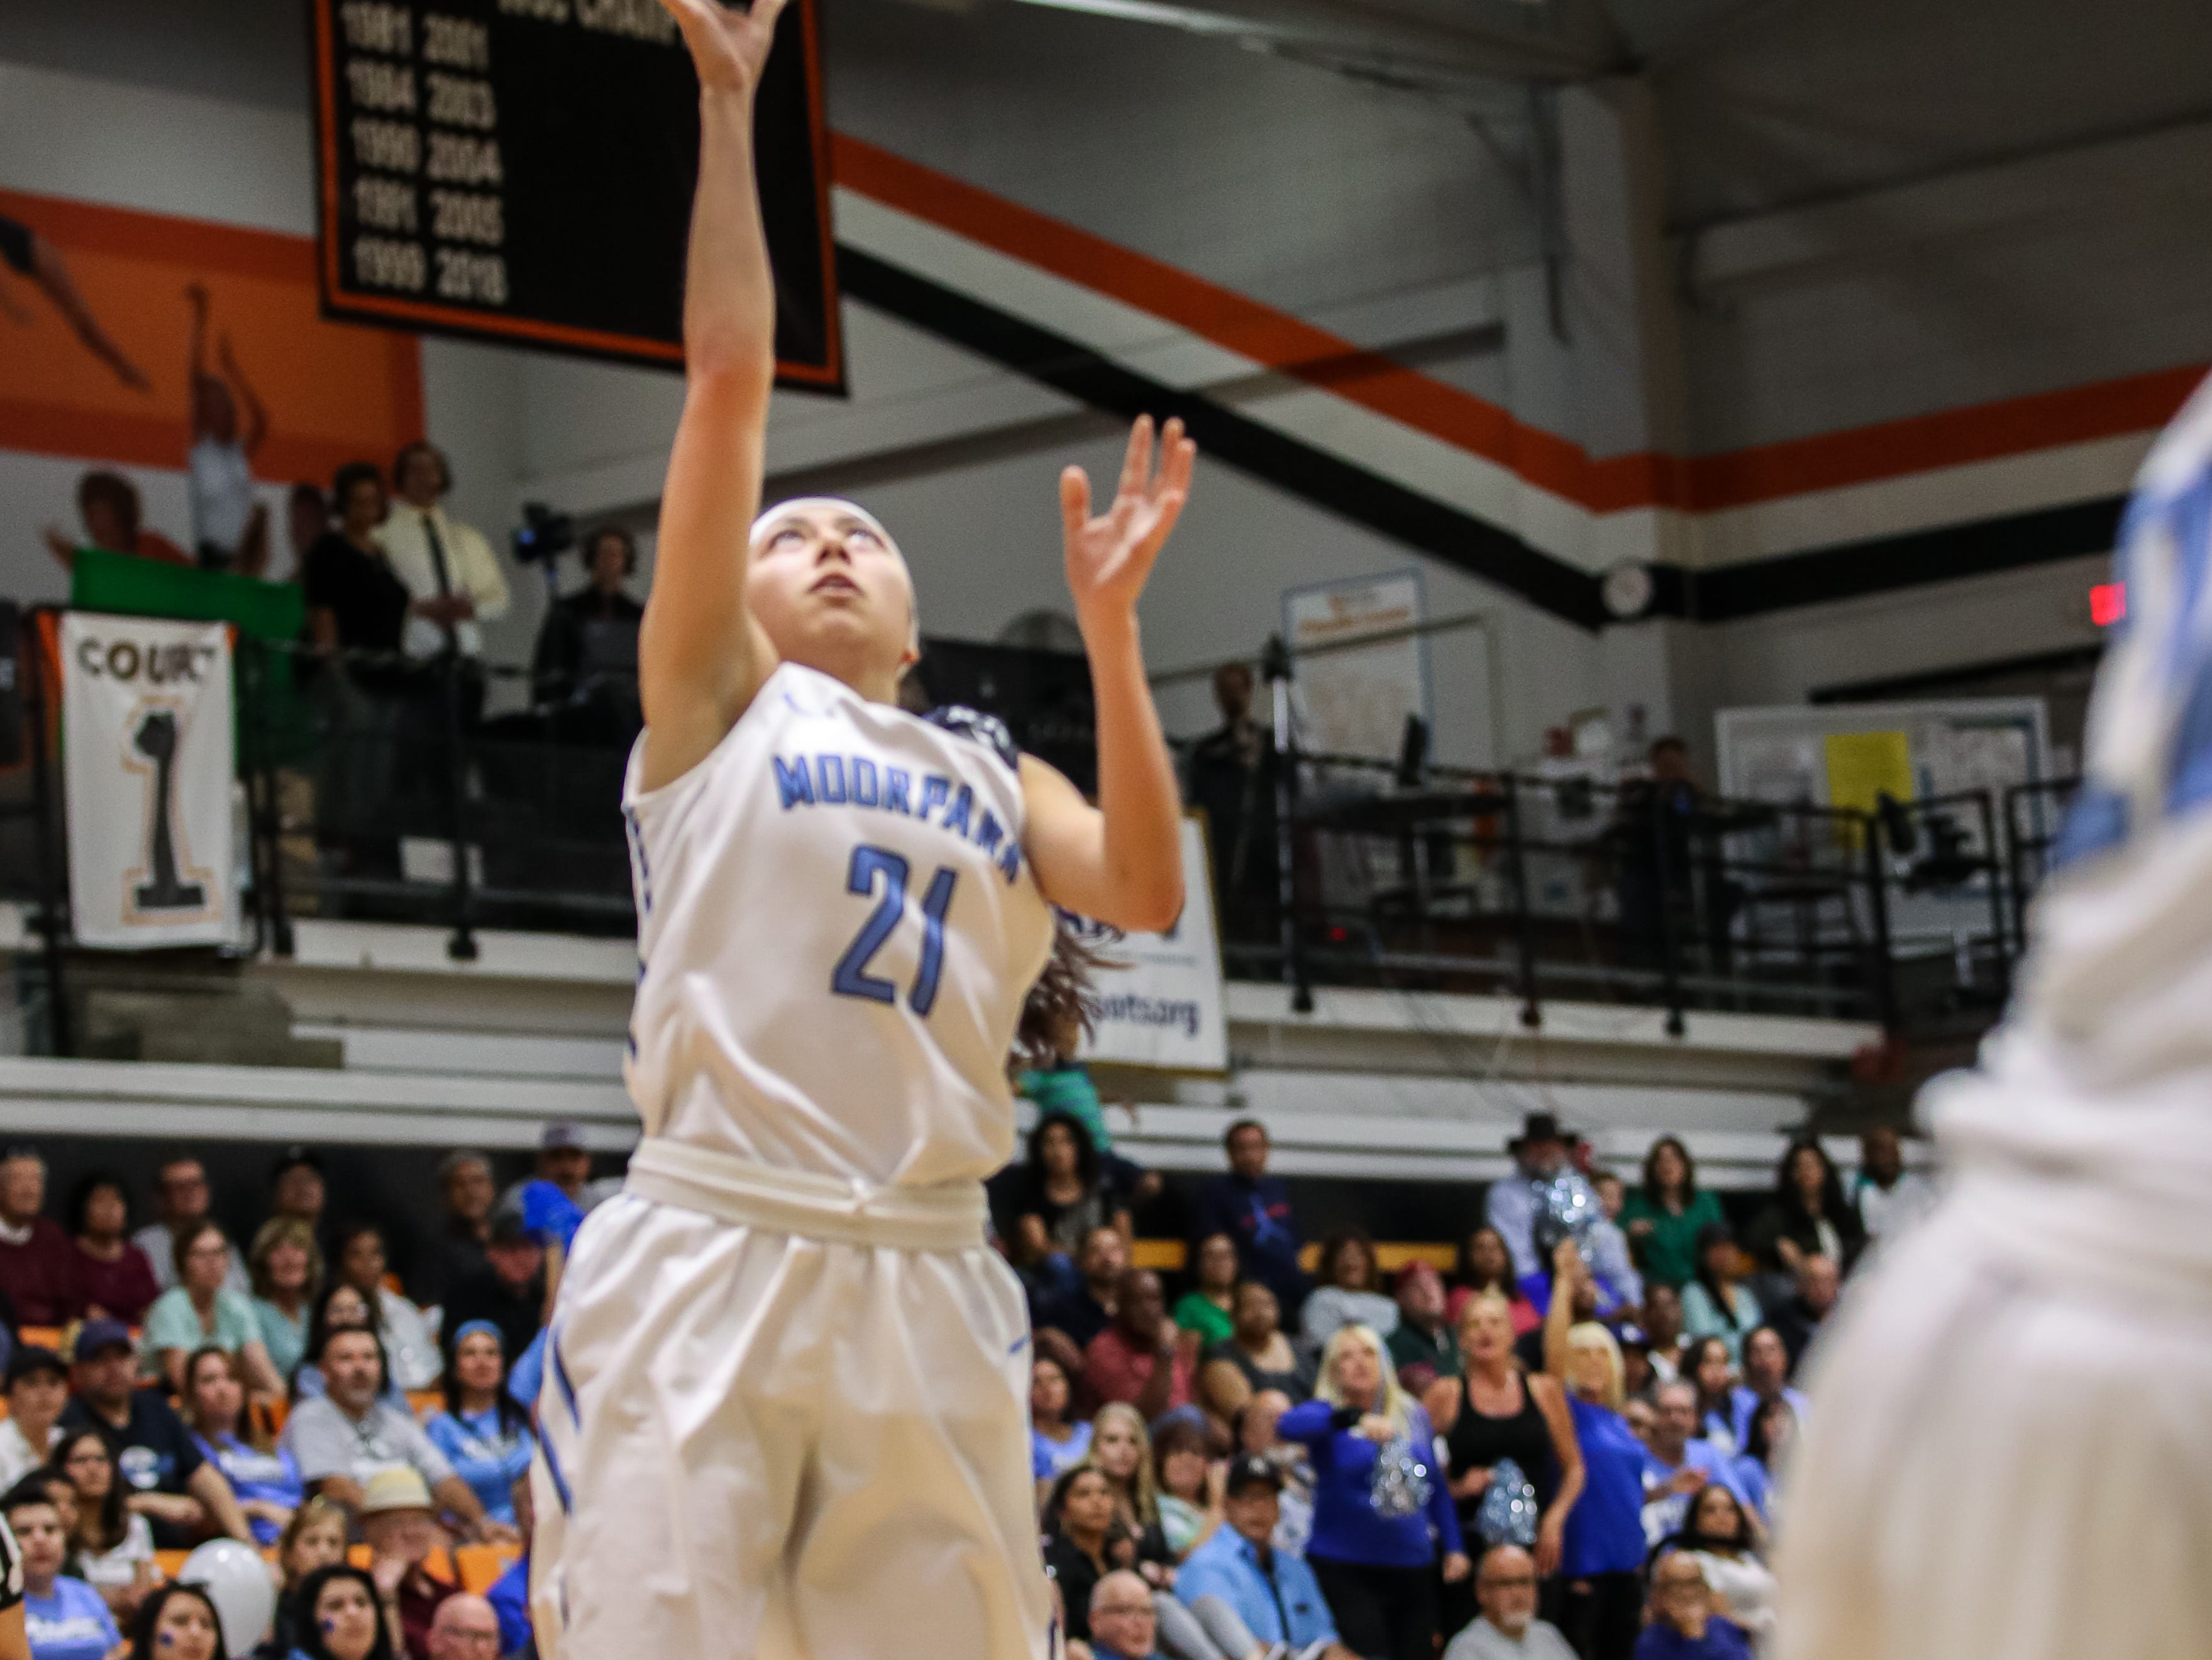 Moorpark College's Jazmin Carrasco drops in a layup against Diablo Valley College during the CCCAA state championship game at Ventura College on Sunday. Moorpark lost, 68-61.